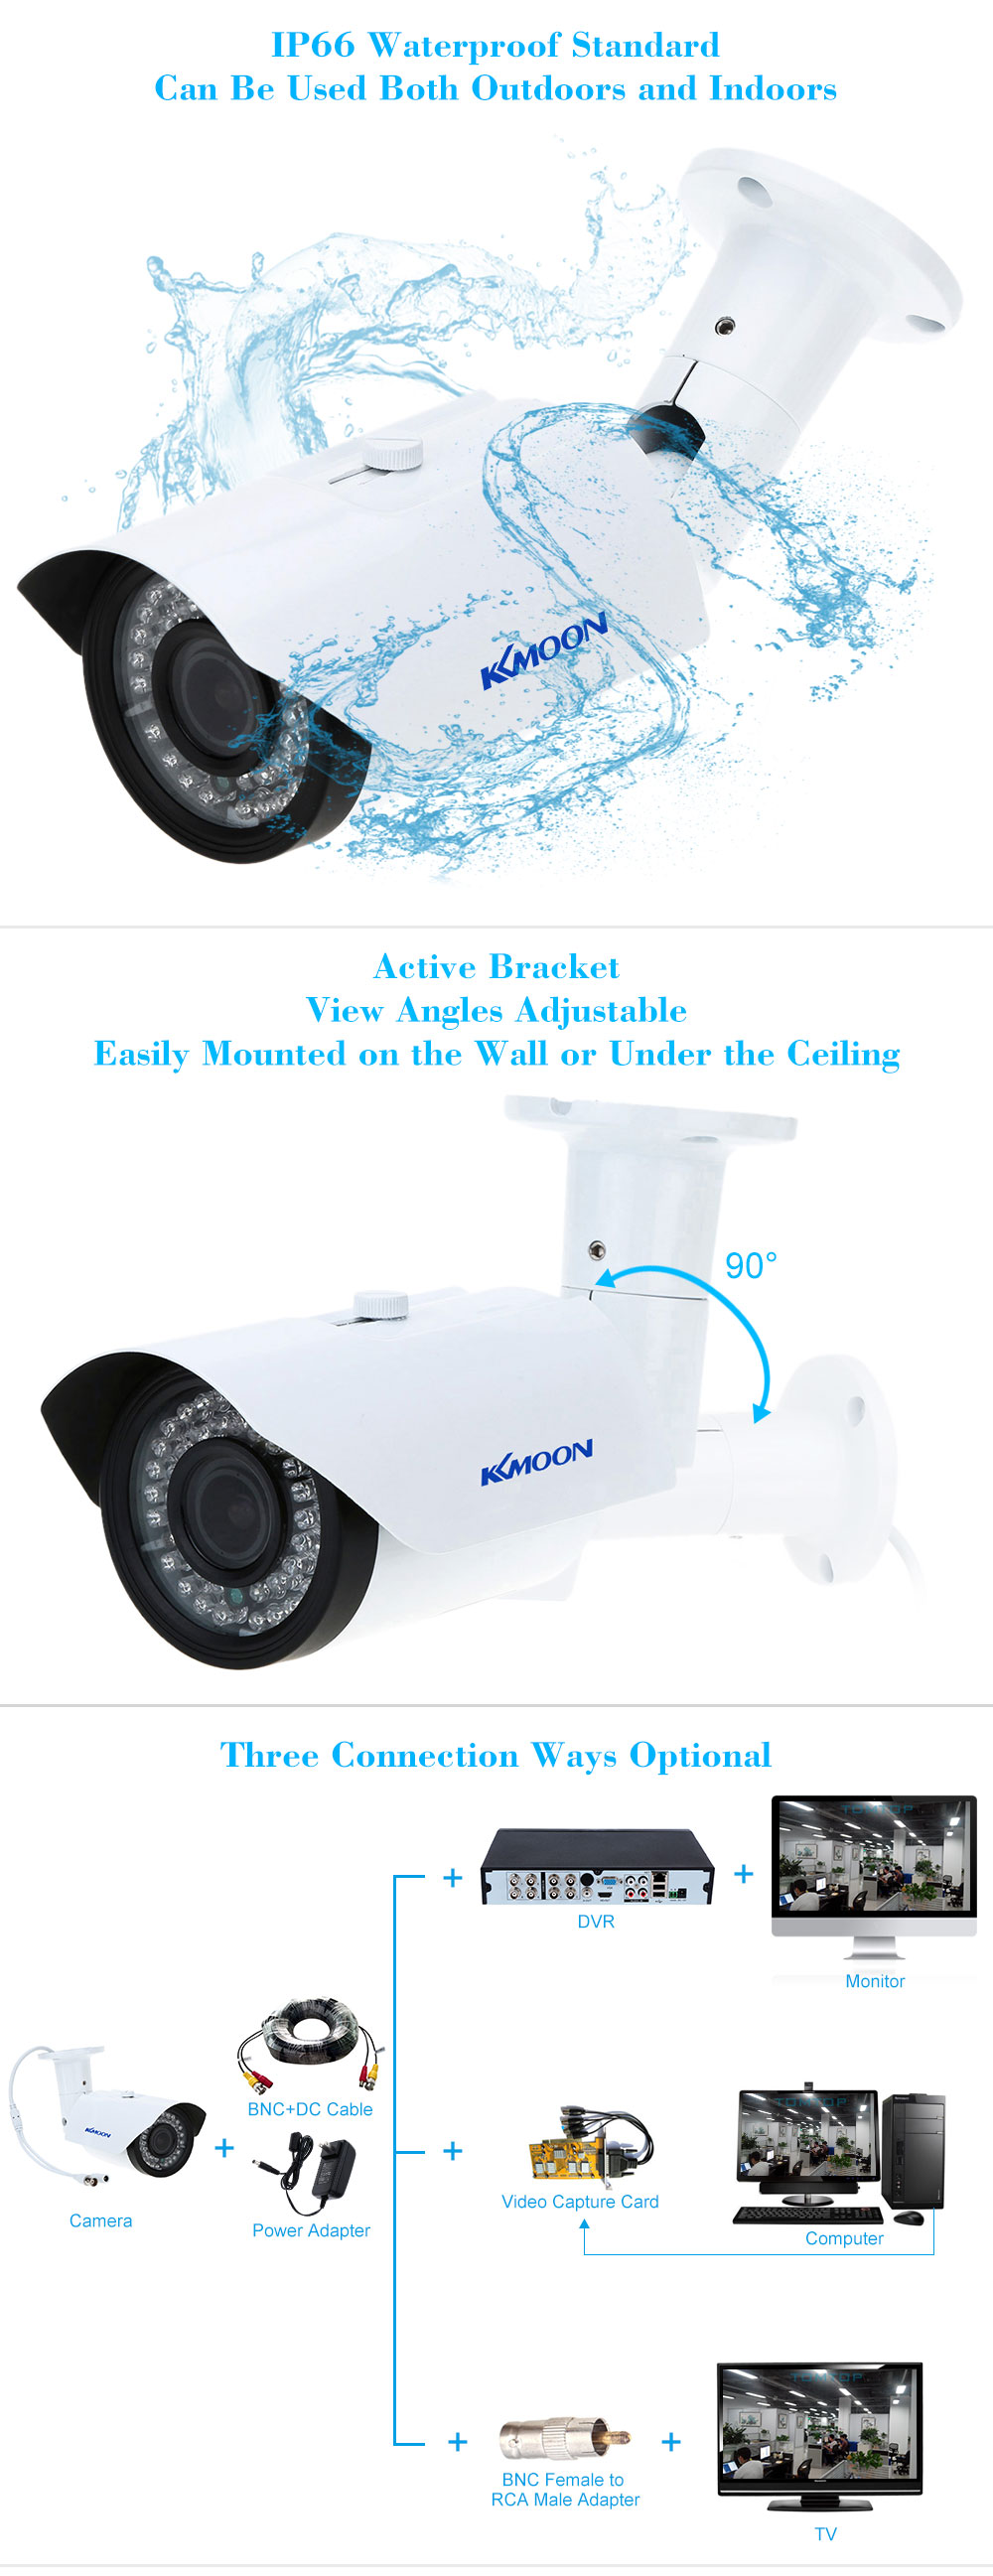 Kkmoon Tp W225bk 28 12mm 1200tvl 1 3 Sony 42ir Outdoor Waterproof Hd Diagram Camera Wiring Cctv This Item Is Equipped With Cmos Sensor 42pcs Ir Leds Manual Vari Focal Lens Horizontal Resolution Which Can Produces A Better